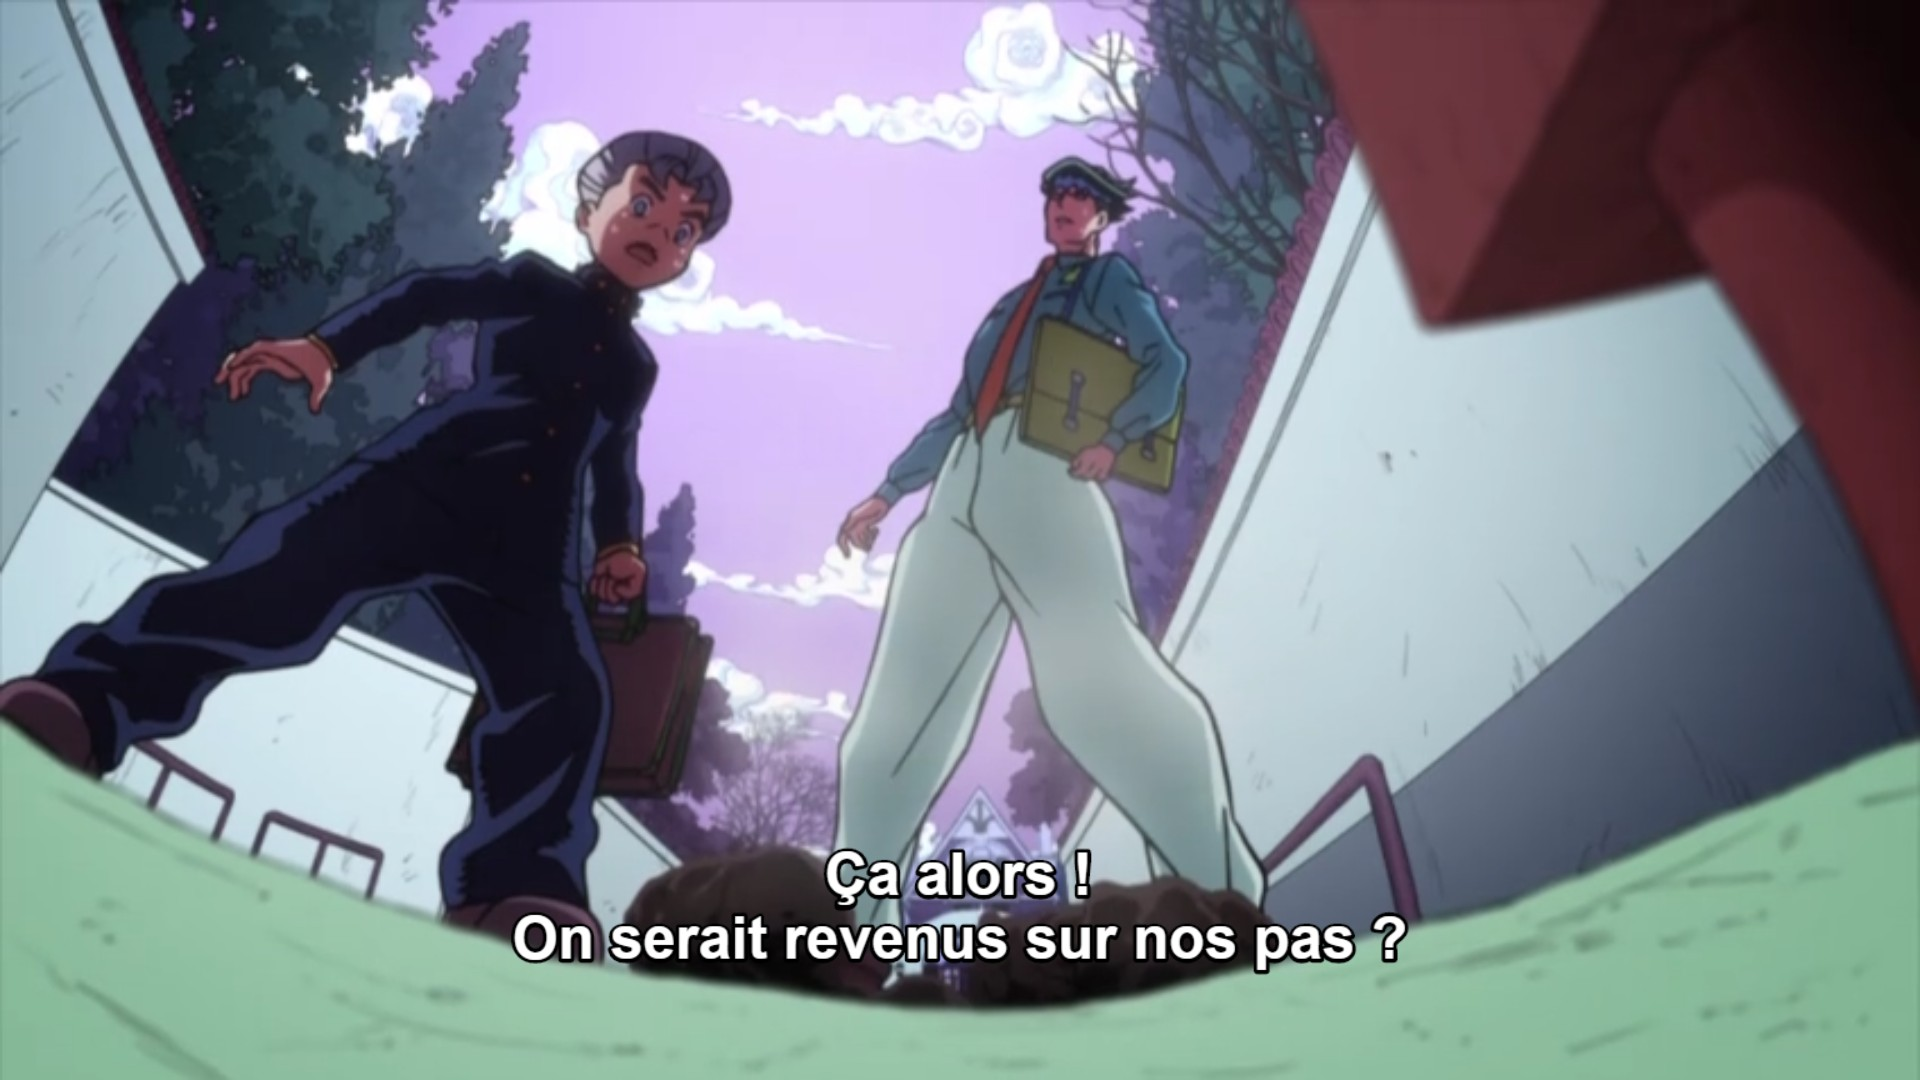 Jojo's Bizarre Adventure Saison 3 Diamond is Unbreakable - Épisode 17 - streaming - VOSTFR - ADN - Google Chrome_30